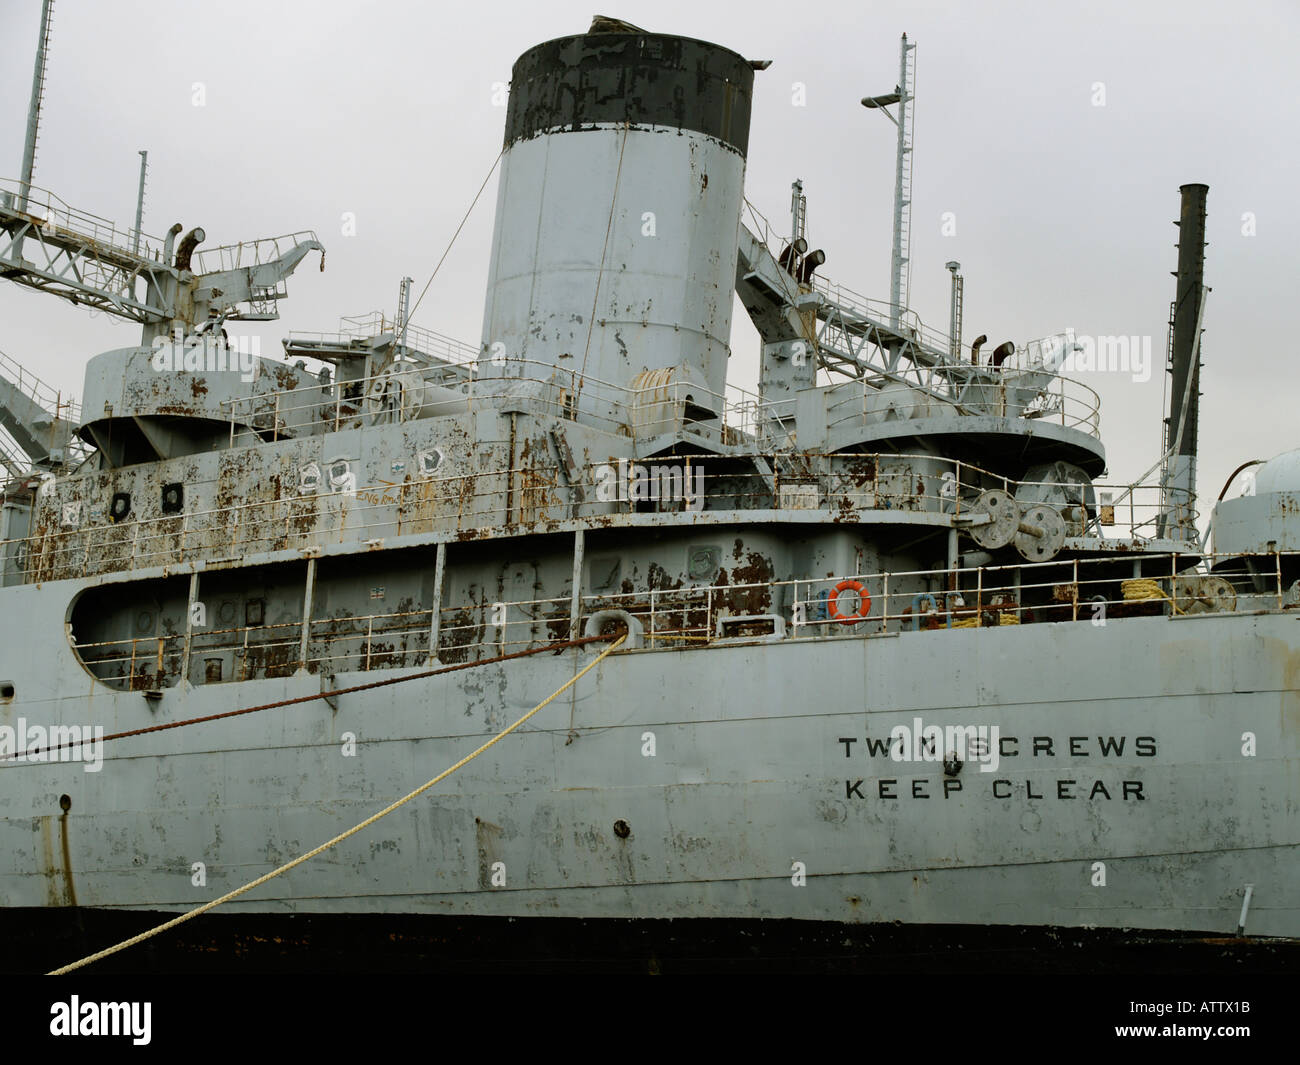 Ex US Navy ship awaiting demolition at the TERRC facility in Hartlepool Co. Durham, UK Stock Photo